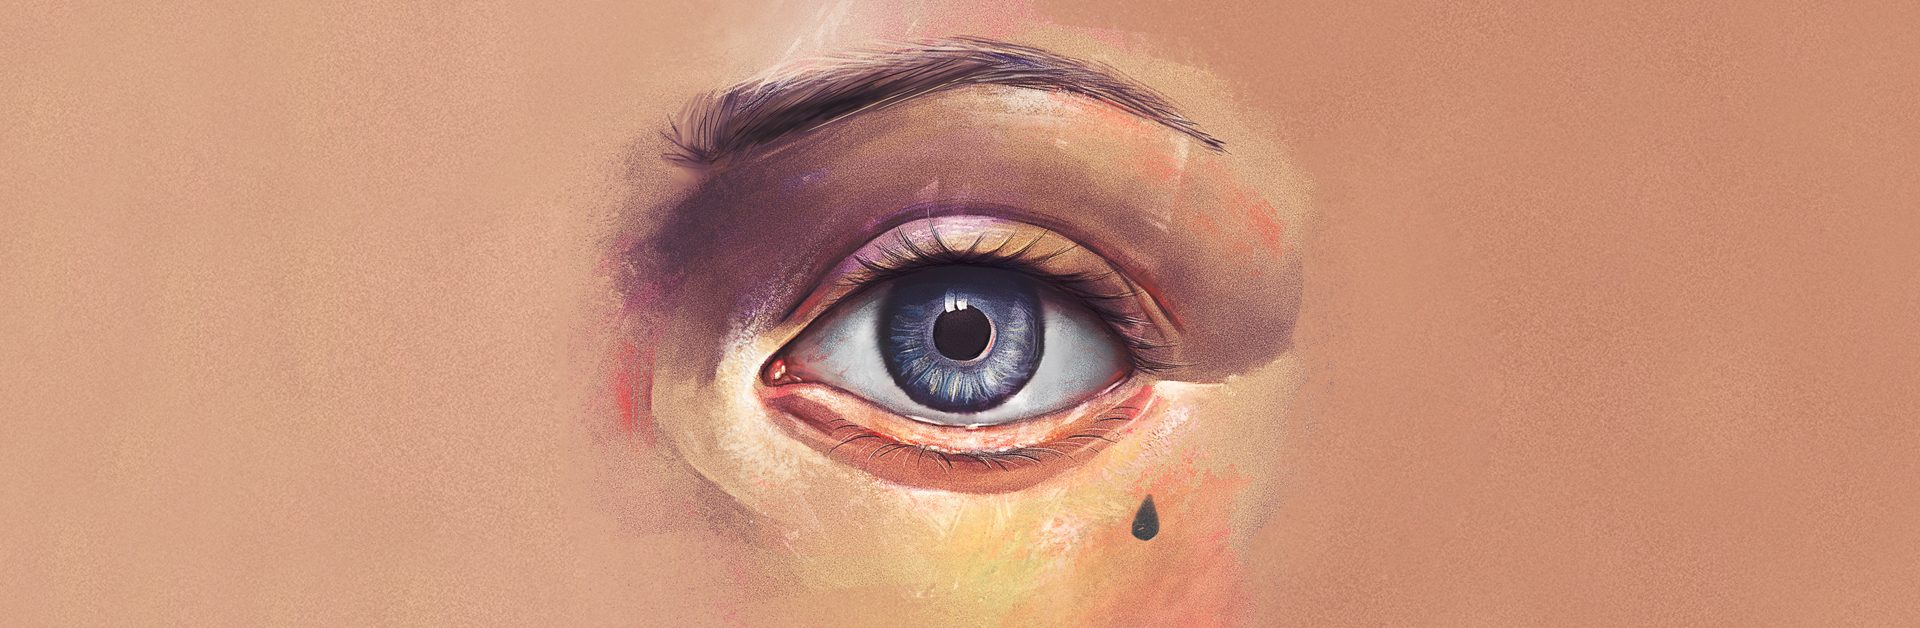 How To Paint Realistic Eyes The Ultimate Digital Painting Guide